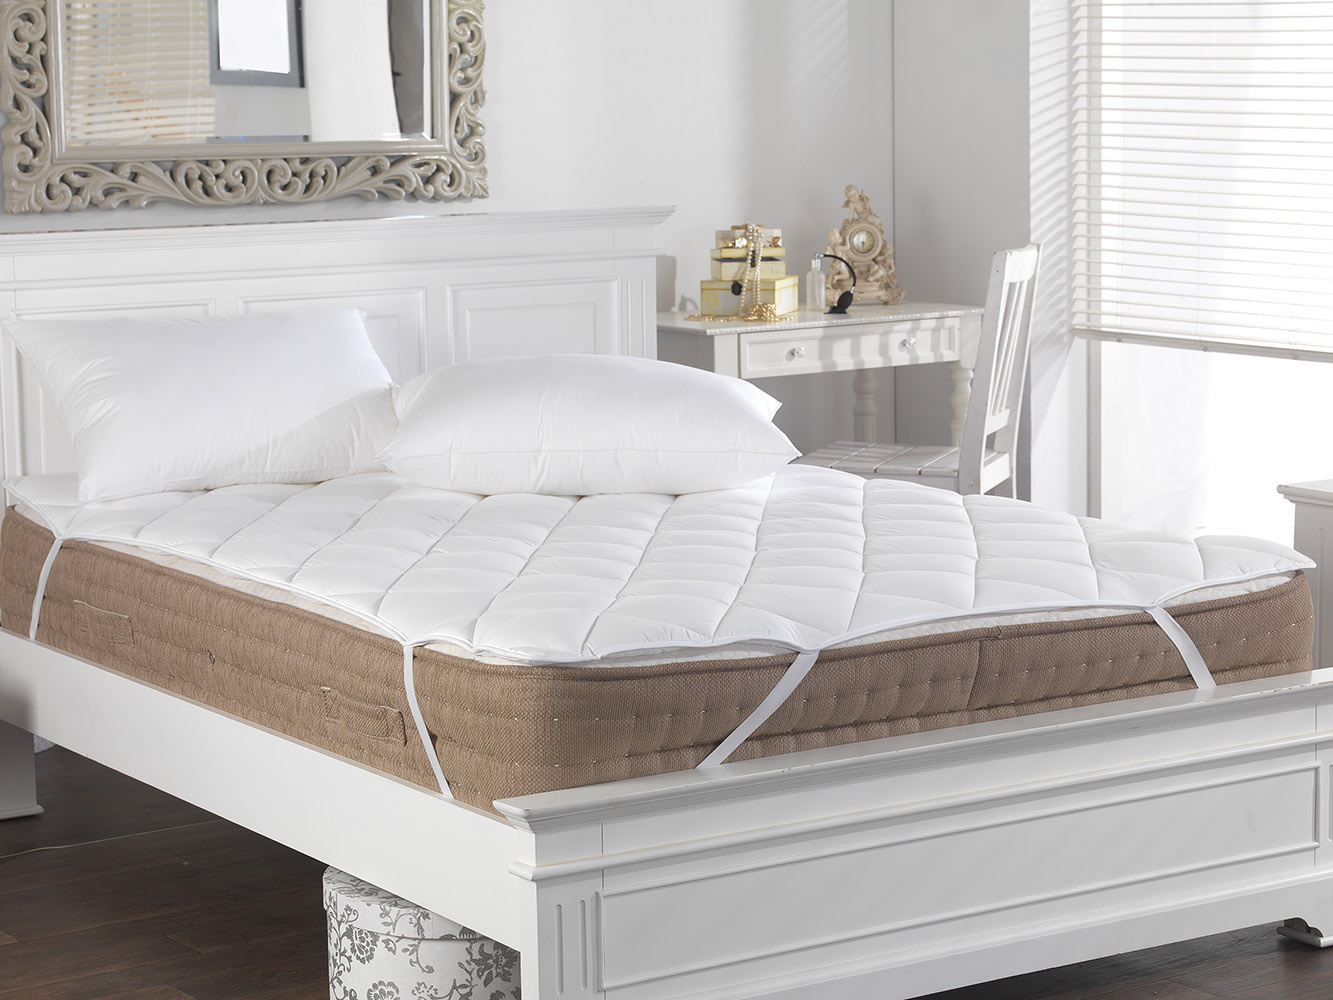 Slight Second - M&S Anti Allergenic Quilted Mattress Toppers & Protectors